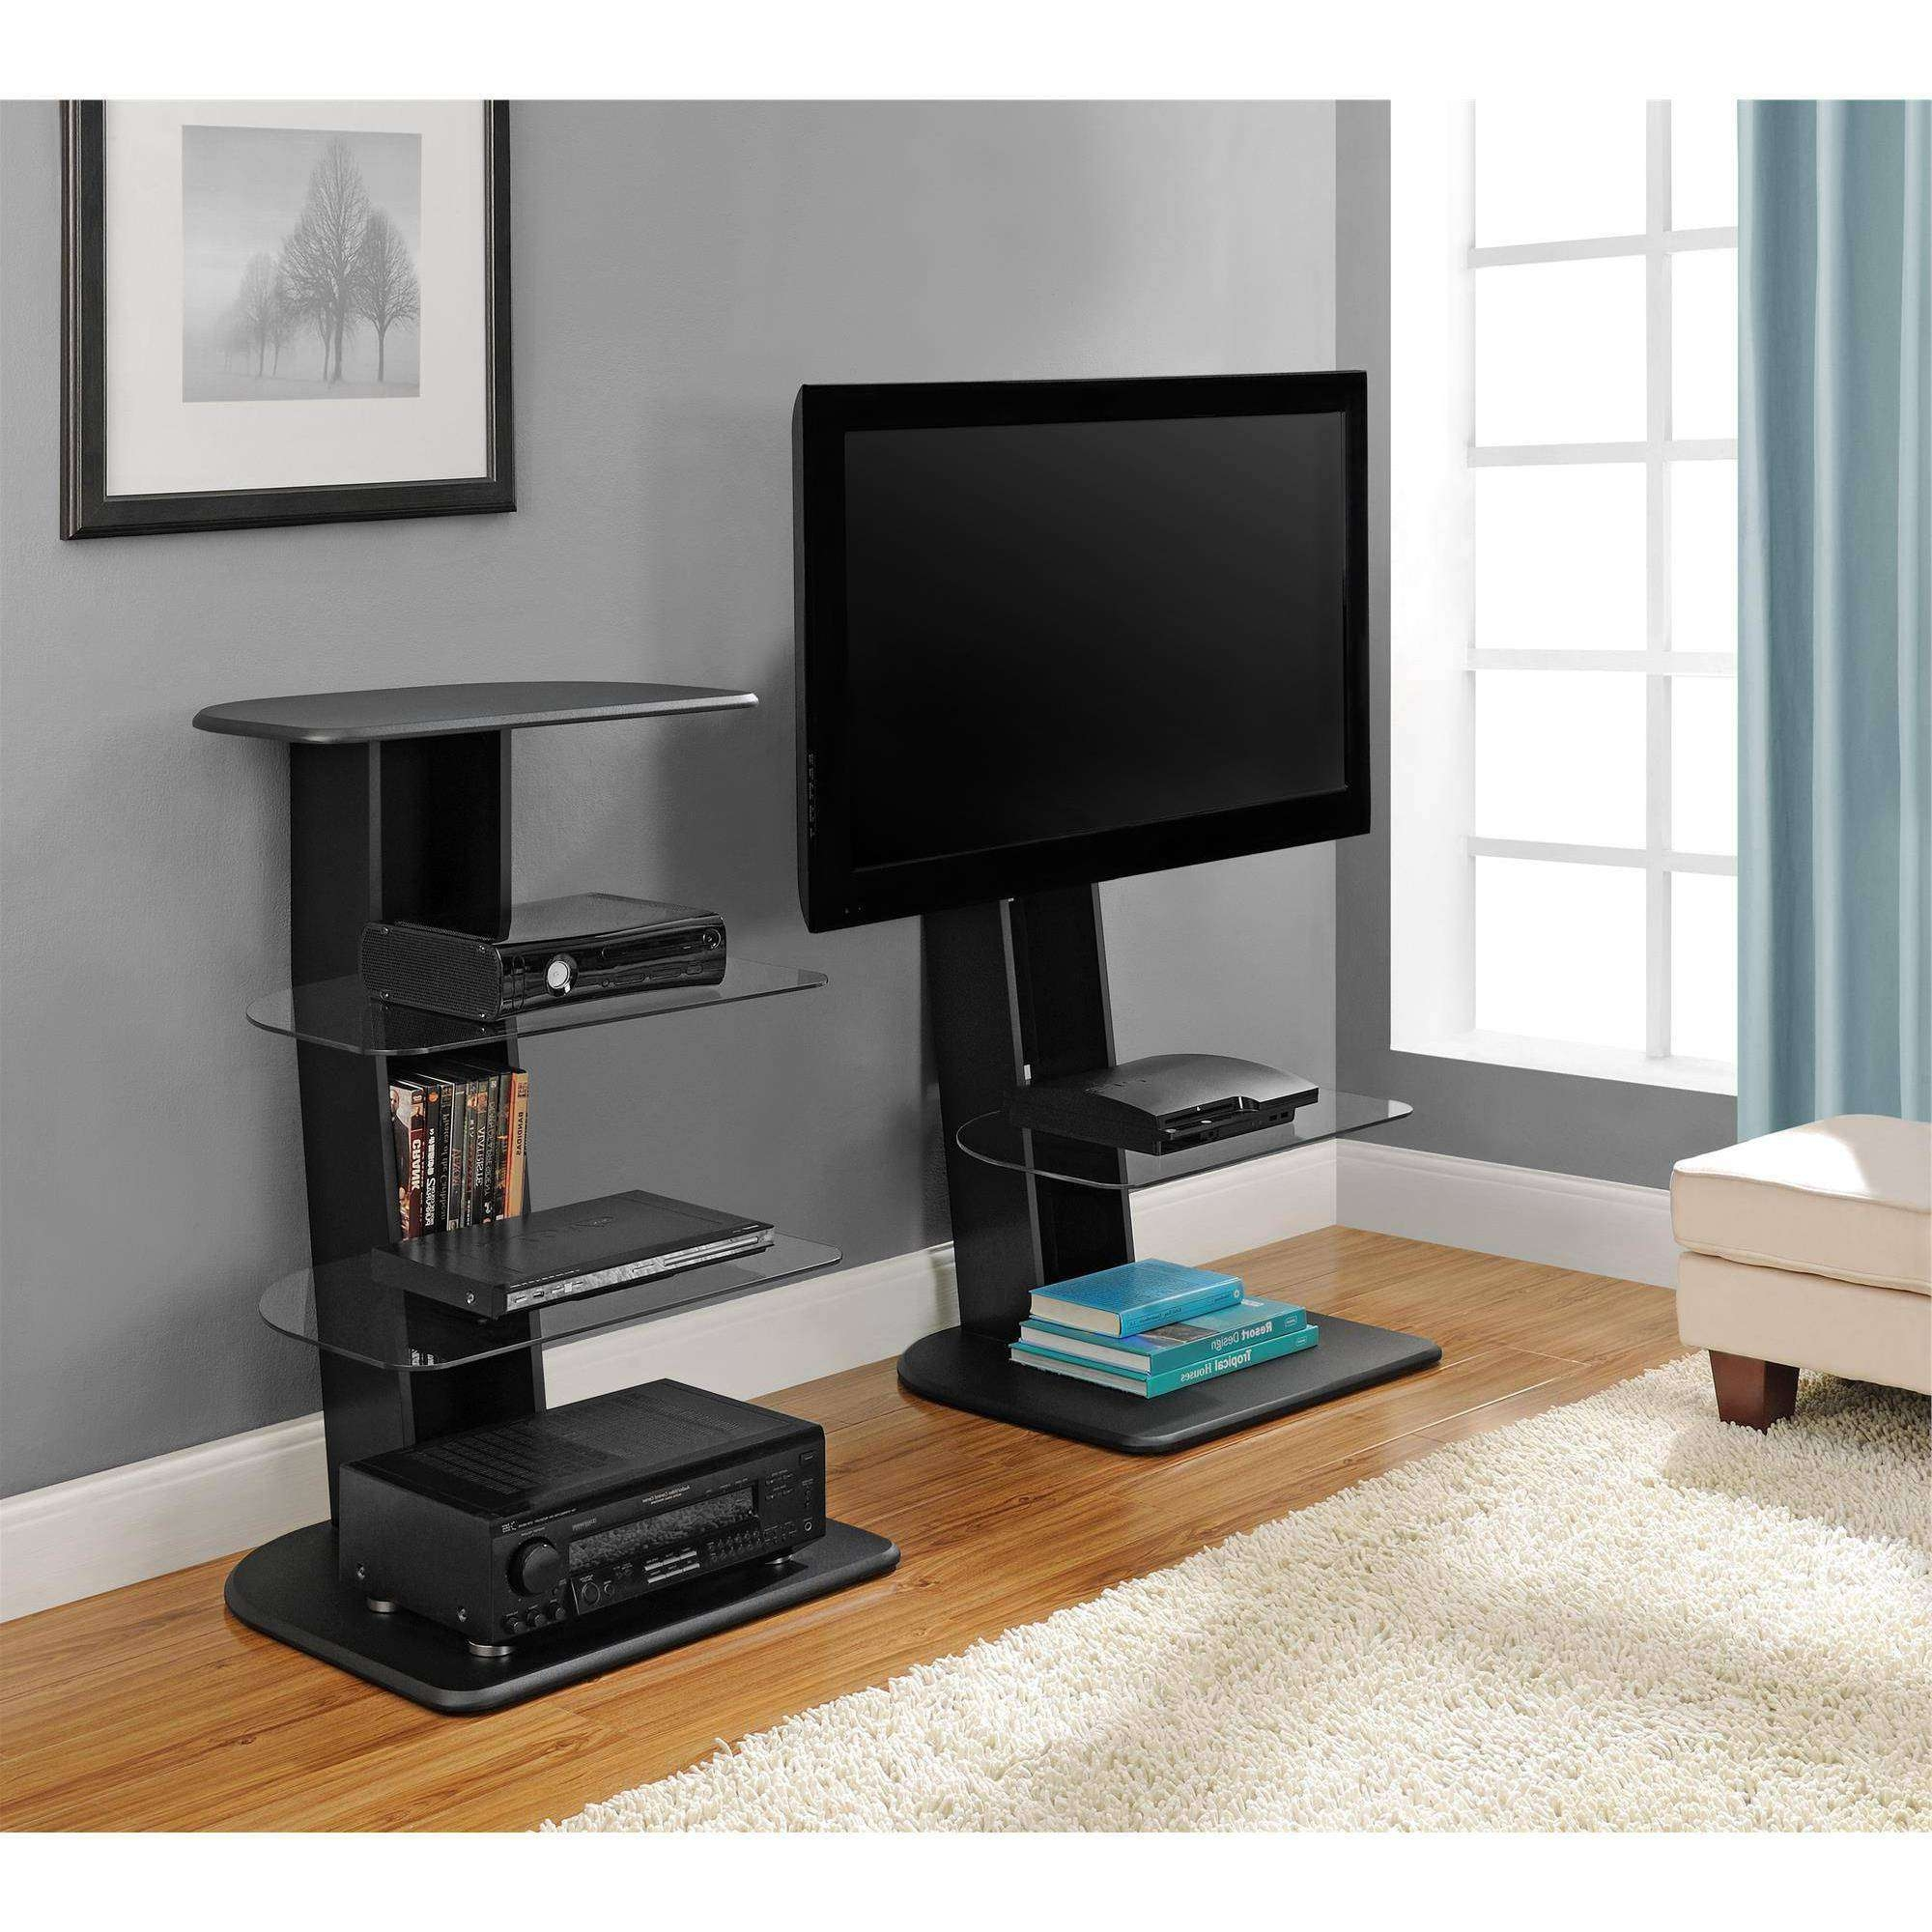 Furnitures : 391447A6146C 1 Inch Tv Stand With Mount Furnitures In Tv Stands For 50 Inch Tvs (View 10 of 15)